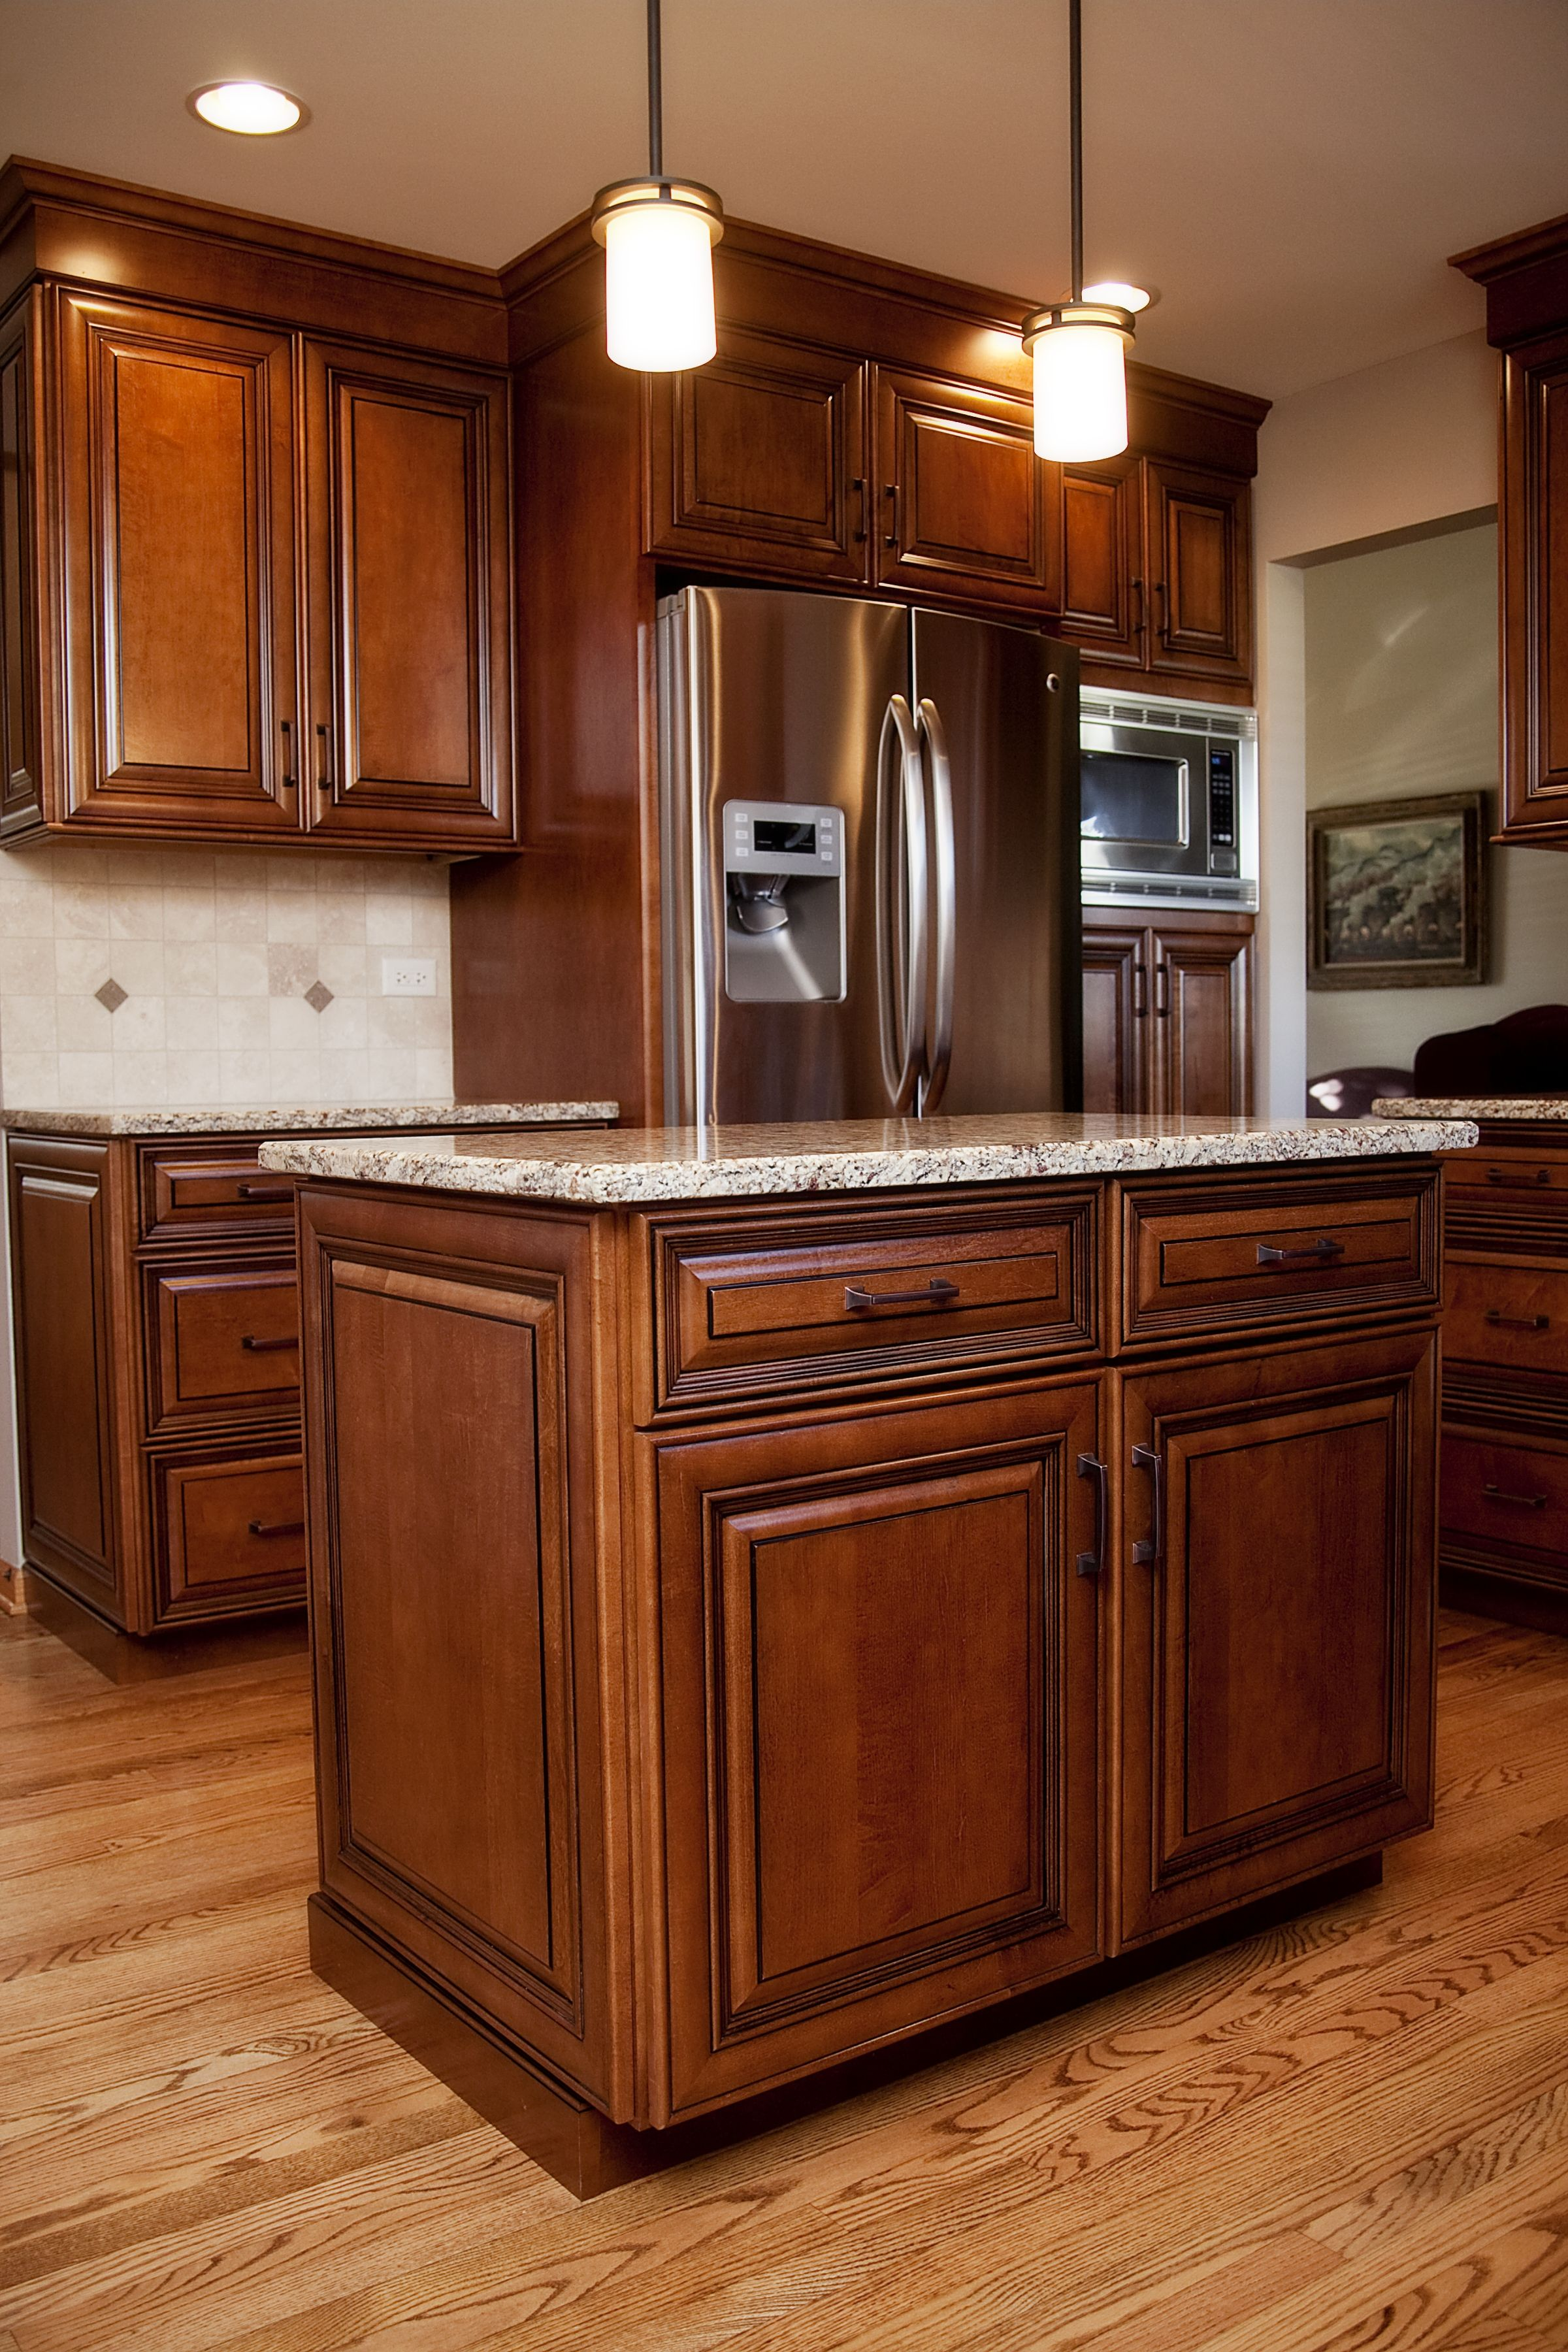 black glaze on kitchen cabinets with images maple kitchen cabinets stained kitchen cabinets on kitchen ideas with dark cabinets id=53897